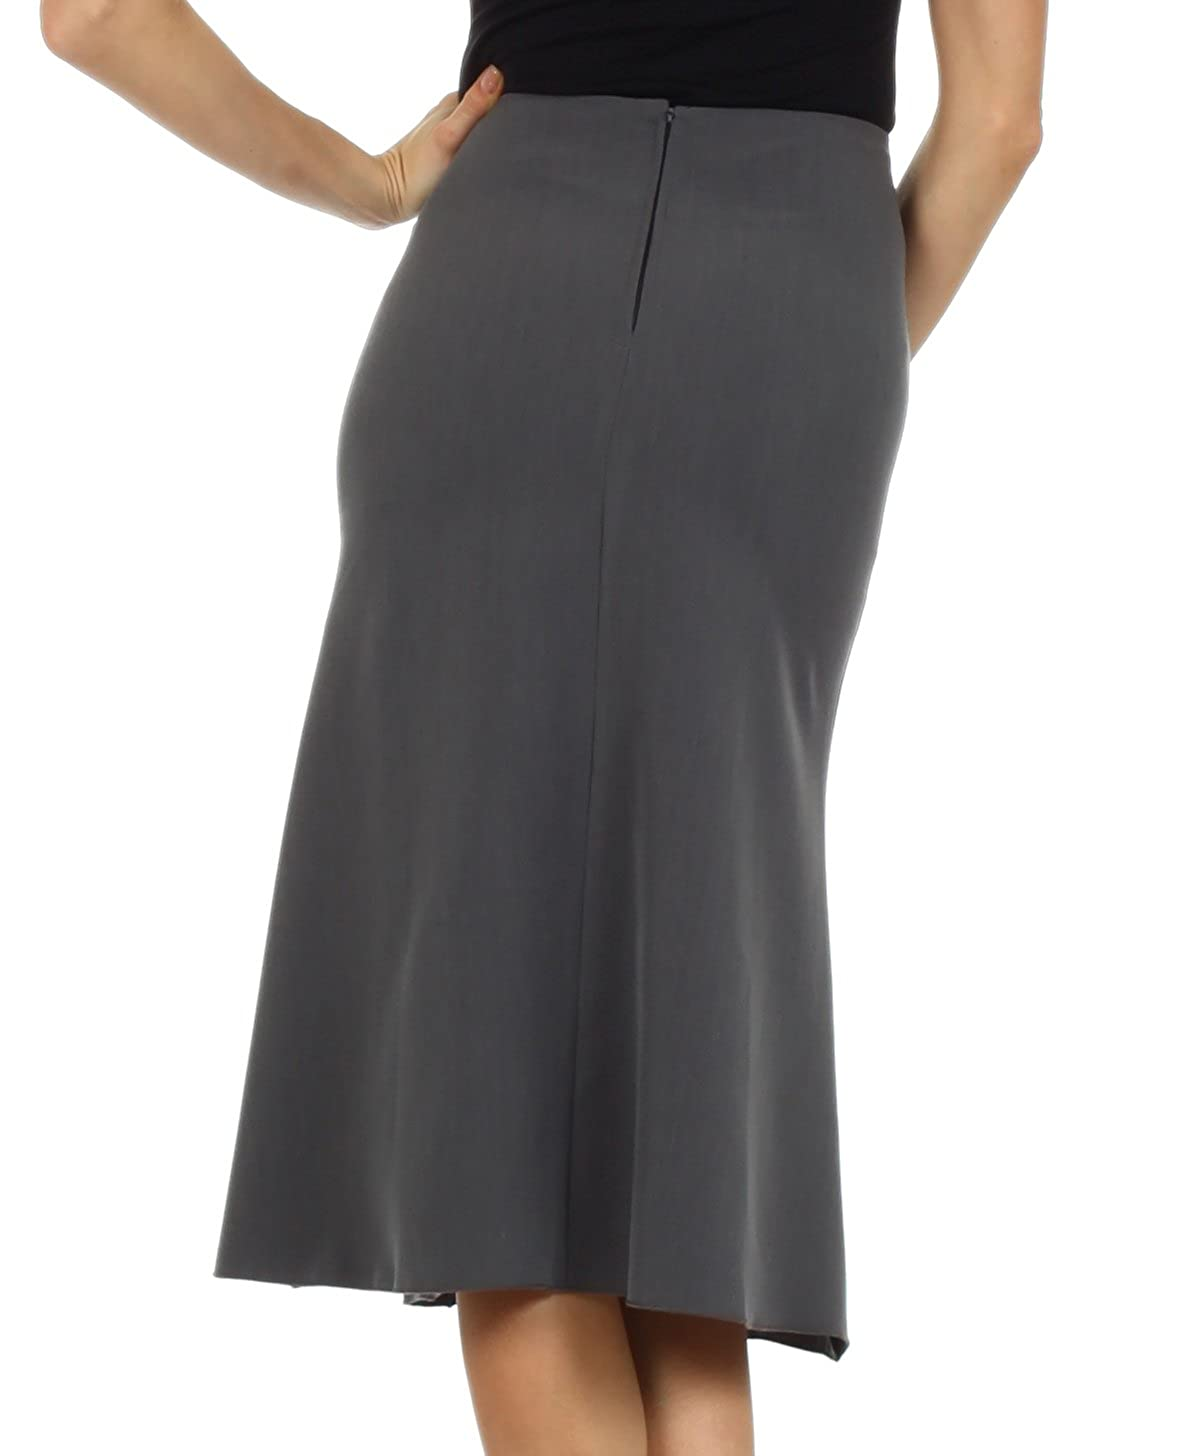 Knee Length Flared Skirt with Seaming and Belt Detail